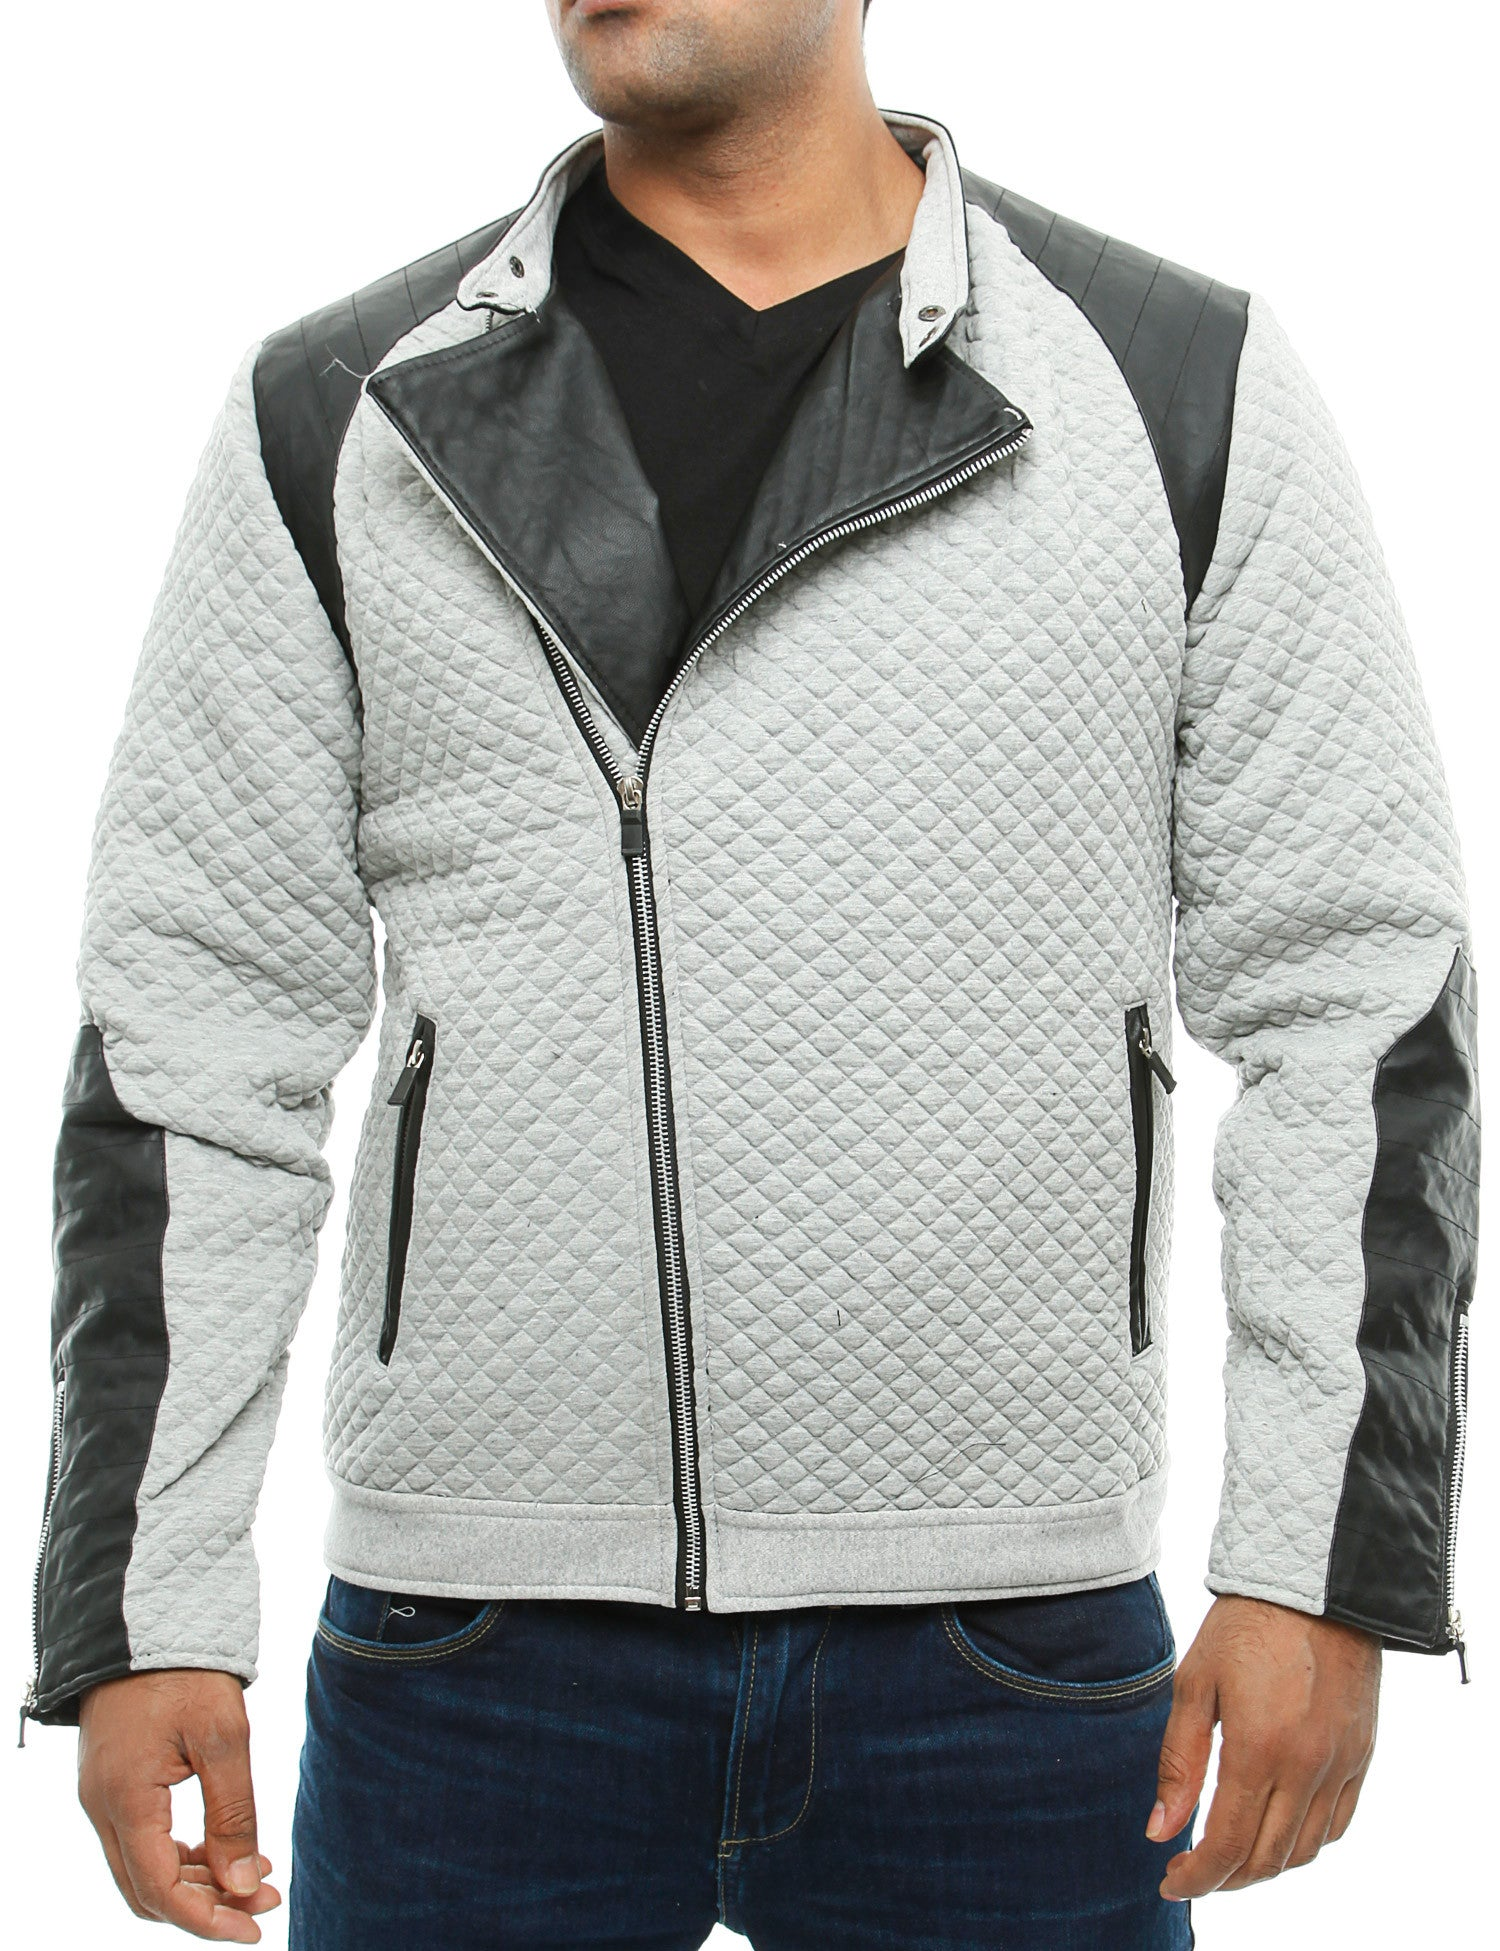 GOV Denim Jacket 5515 Grey